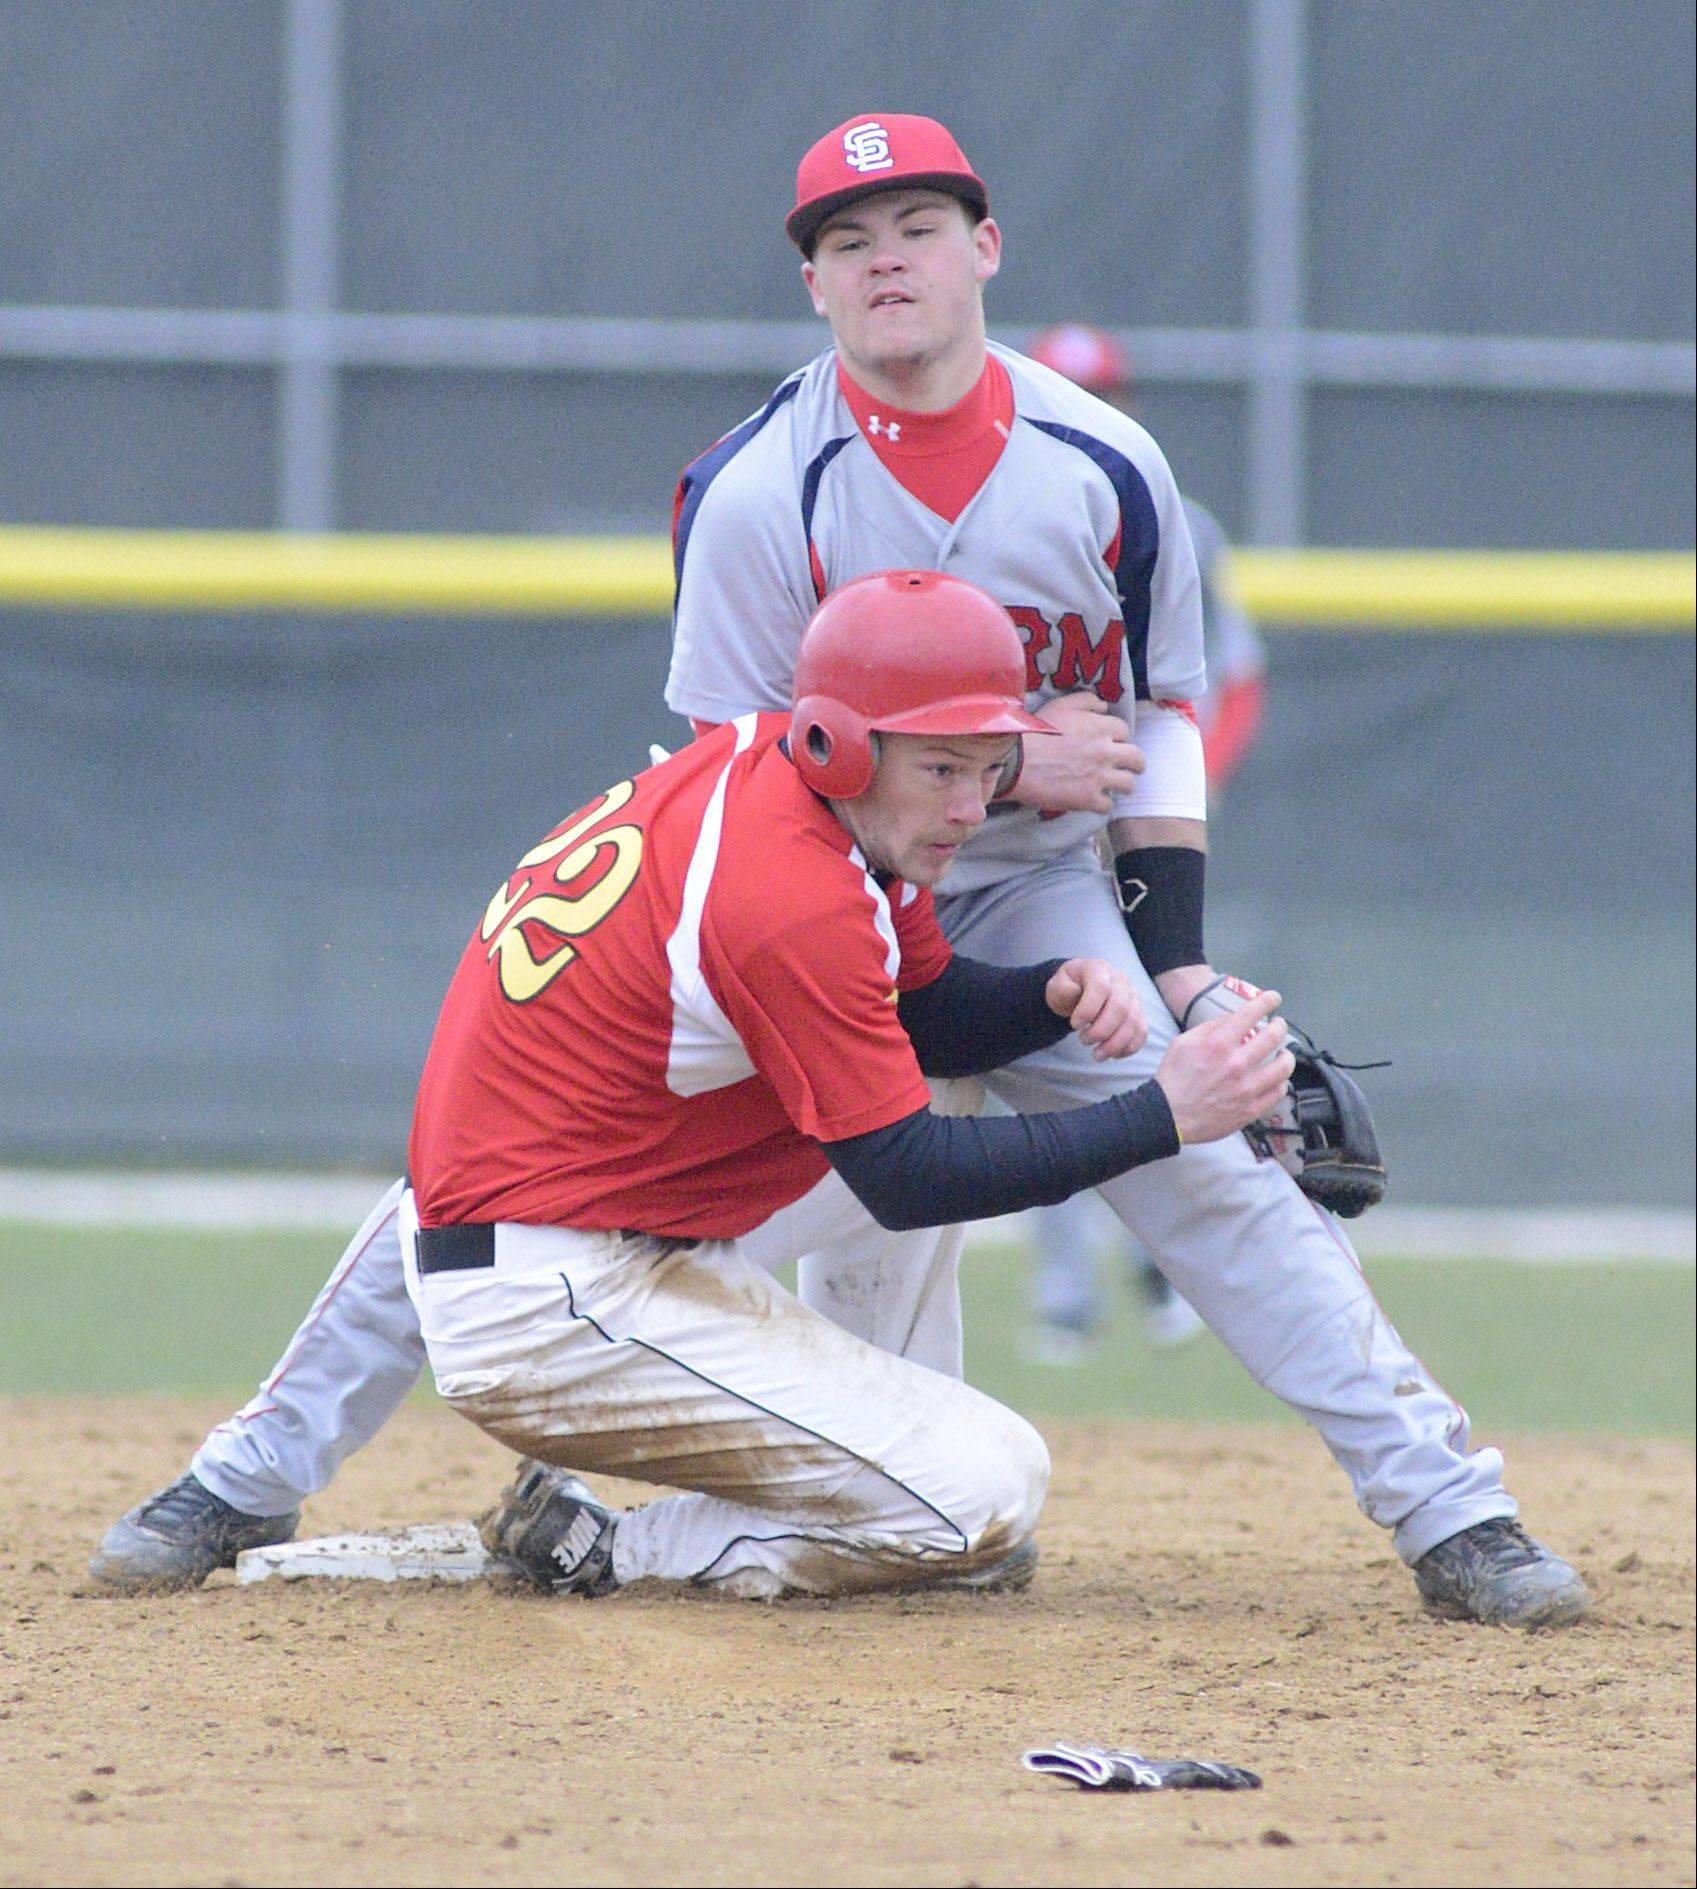 Batavia's Robbie Bowman stops just short of colliding with South Elgin's Riley Halter at second base Friday at Batavia.